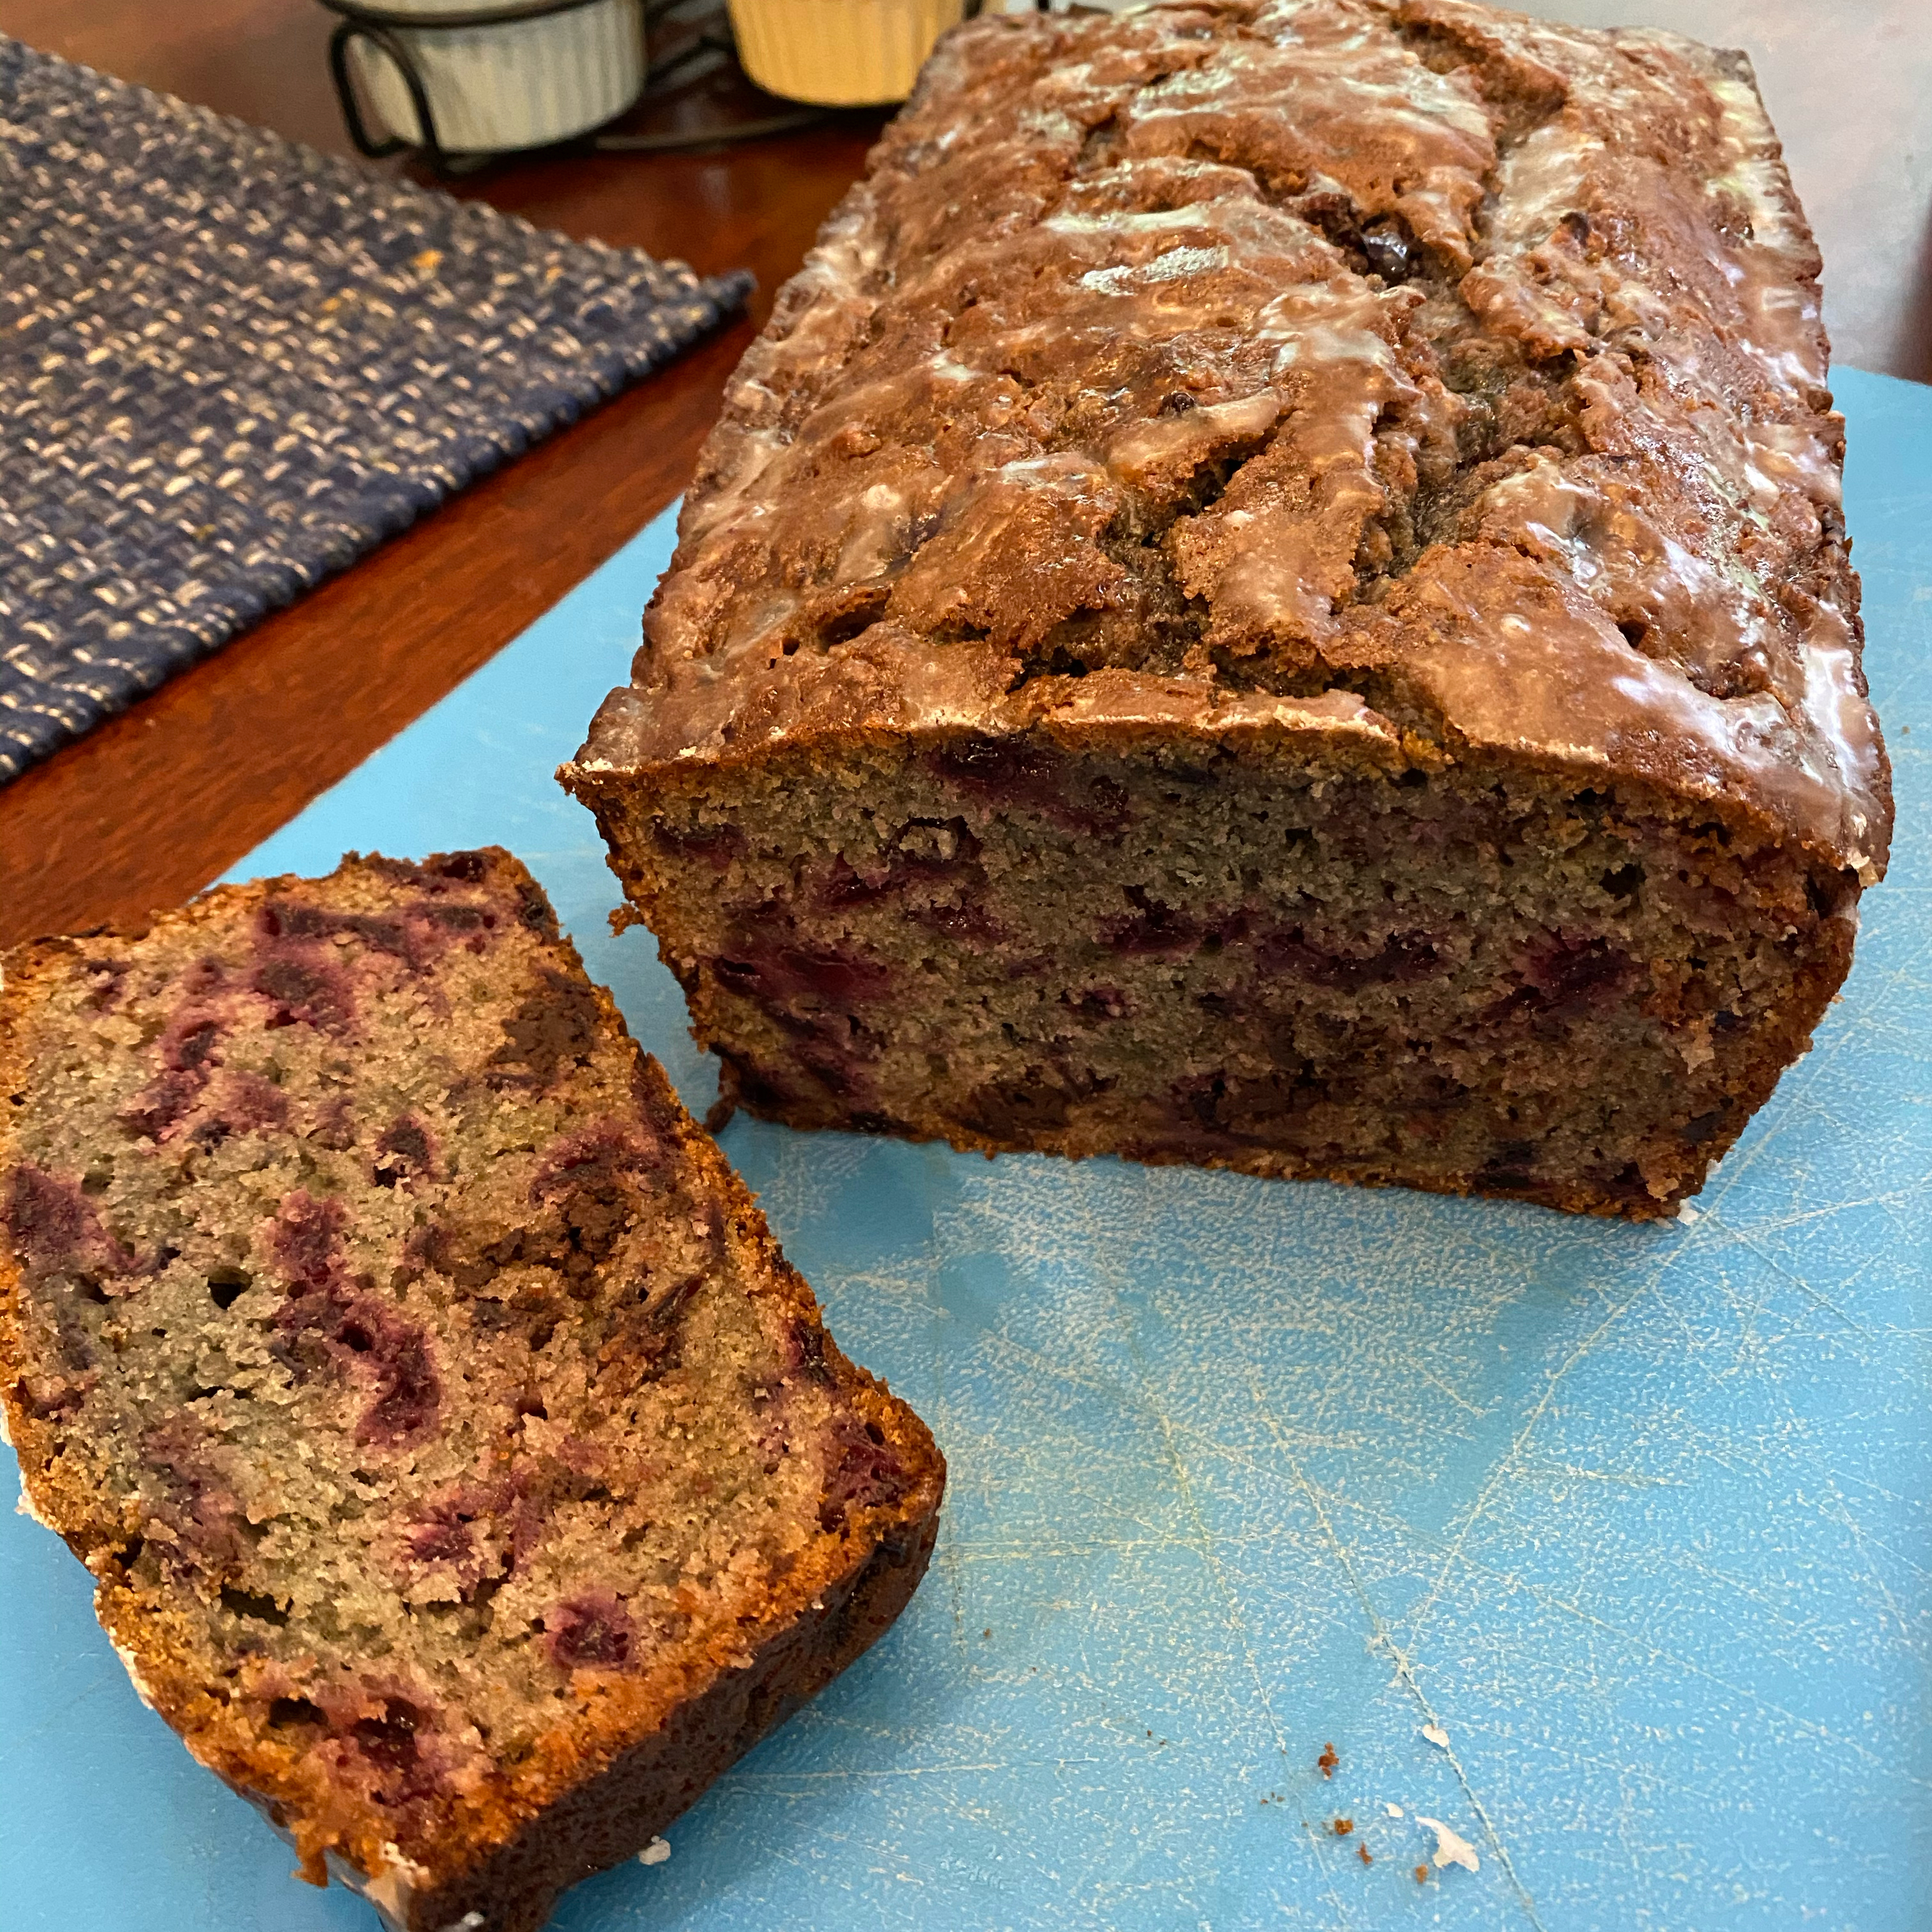 Cherry-Chocolate Loaf